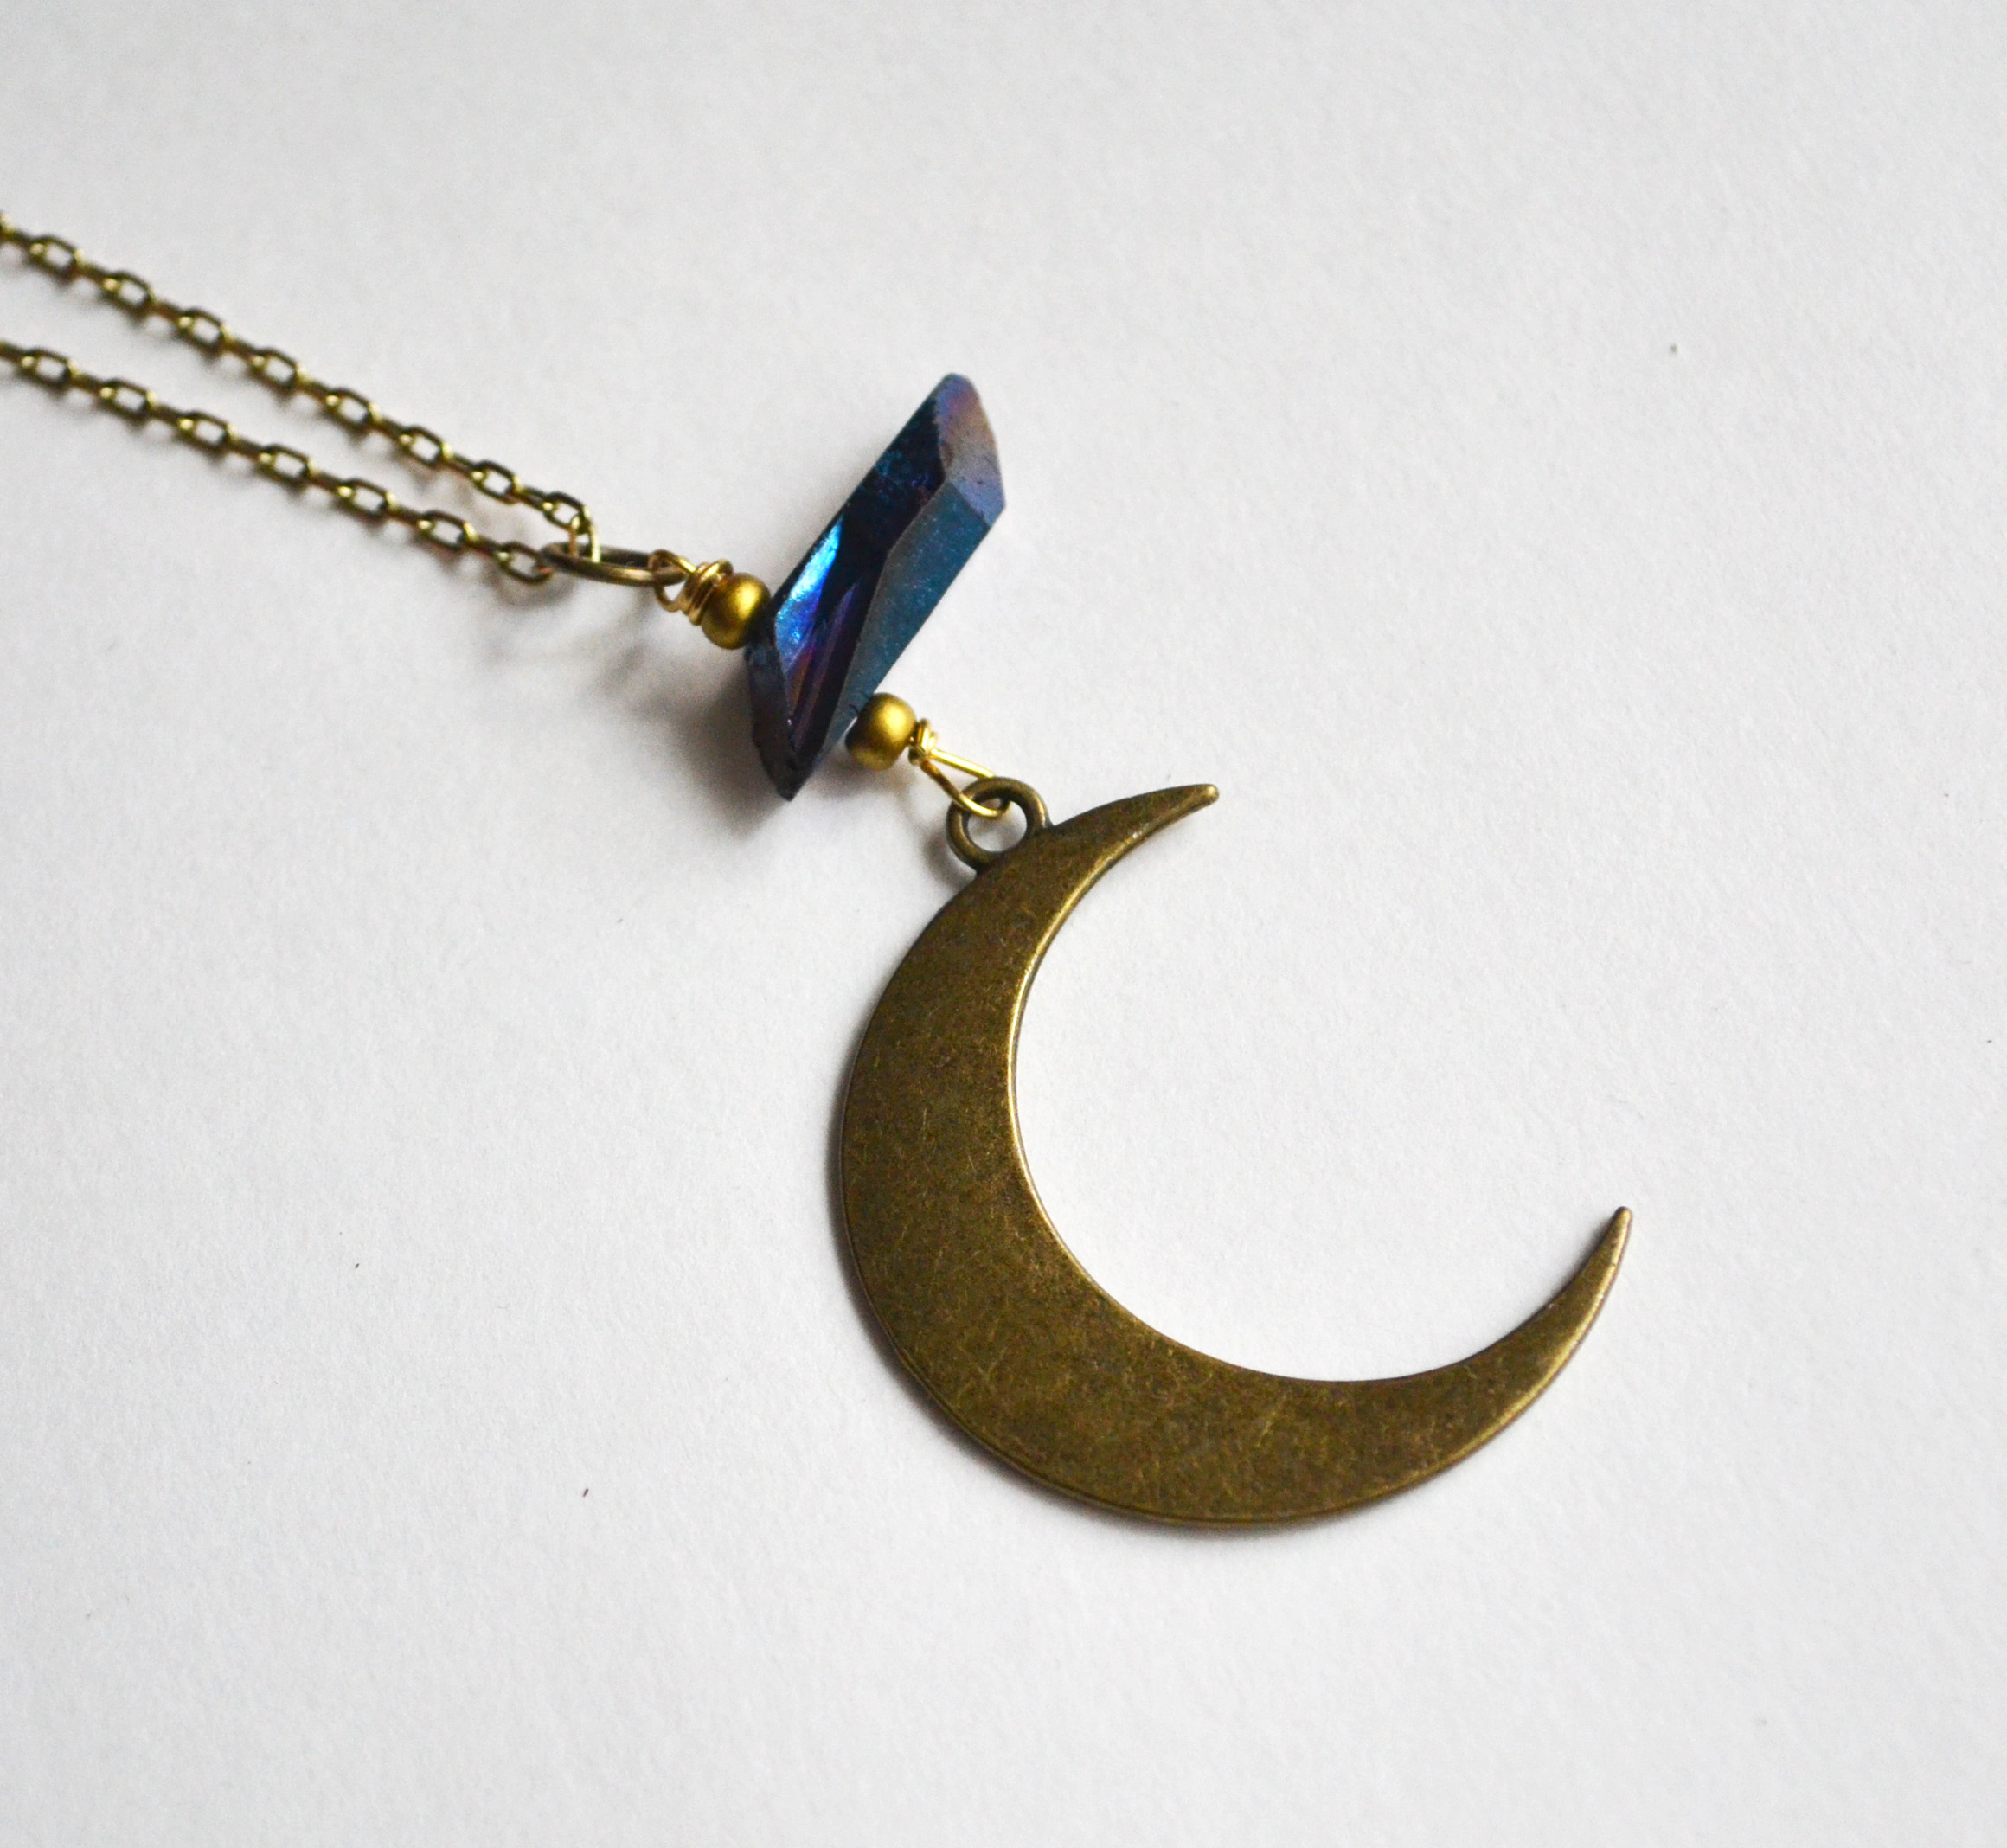 moon madewell prdovr necklaces pdp half layering necklace pendant jsp jewelry category enlarge halfmoon